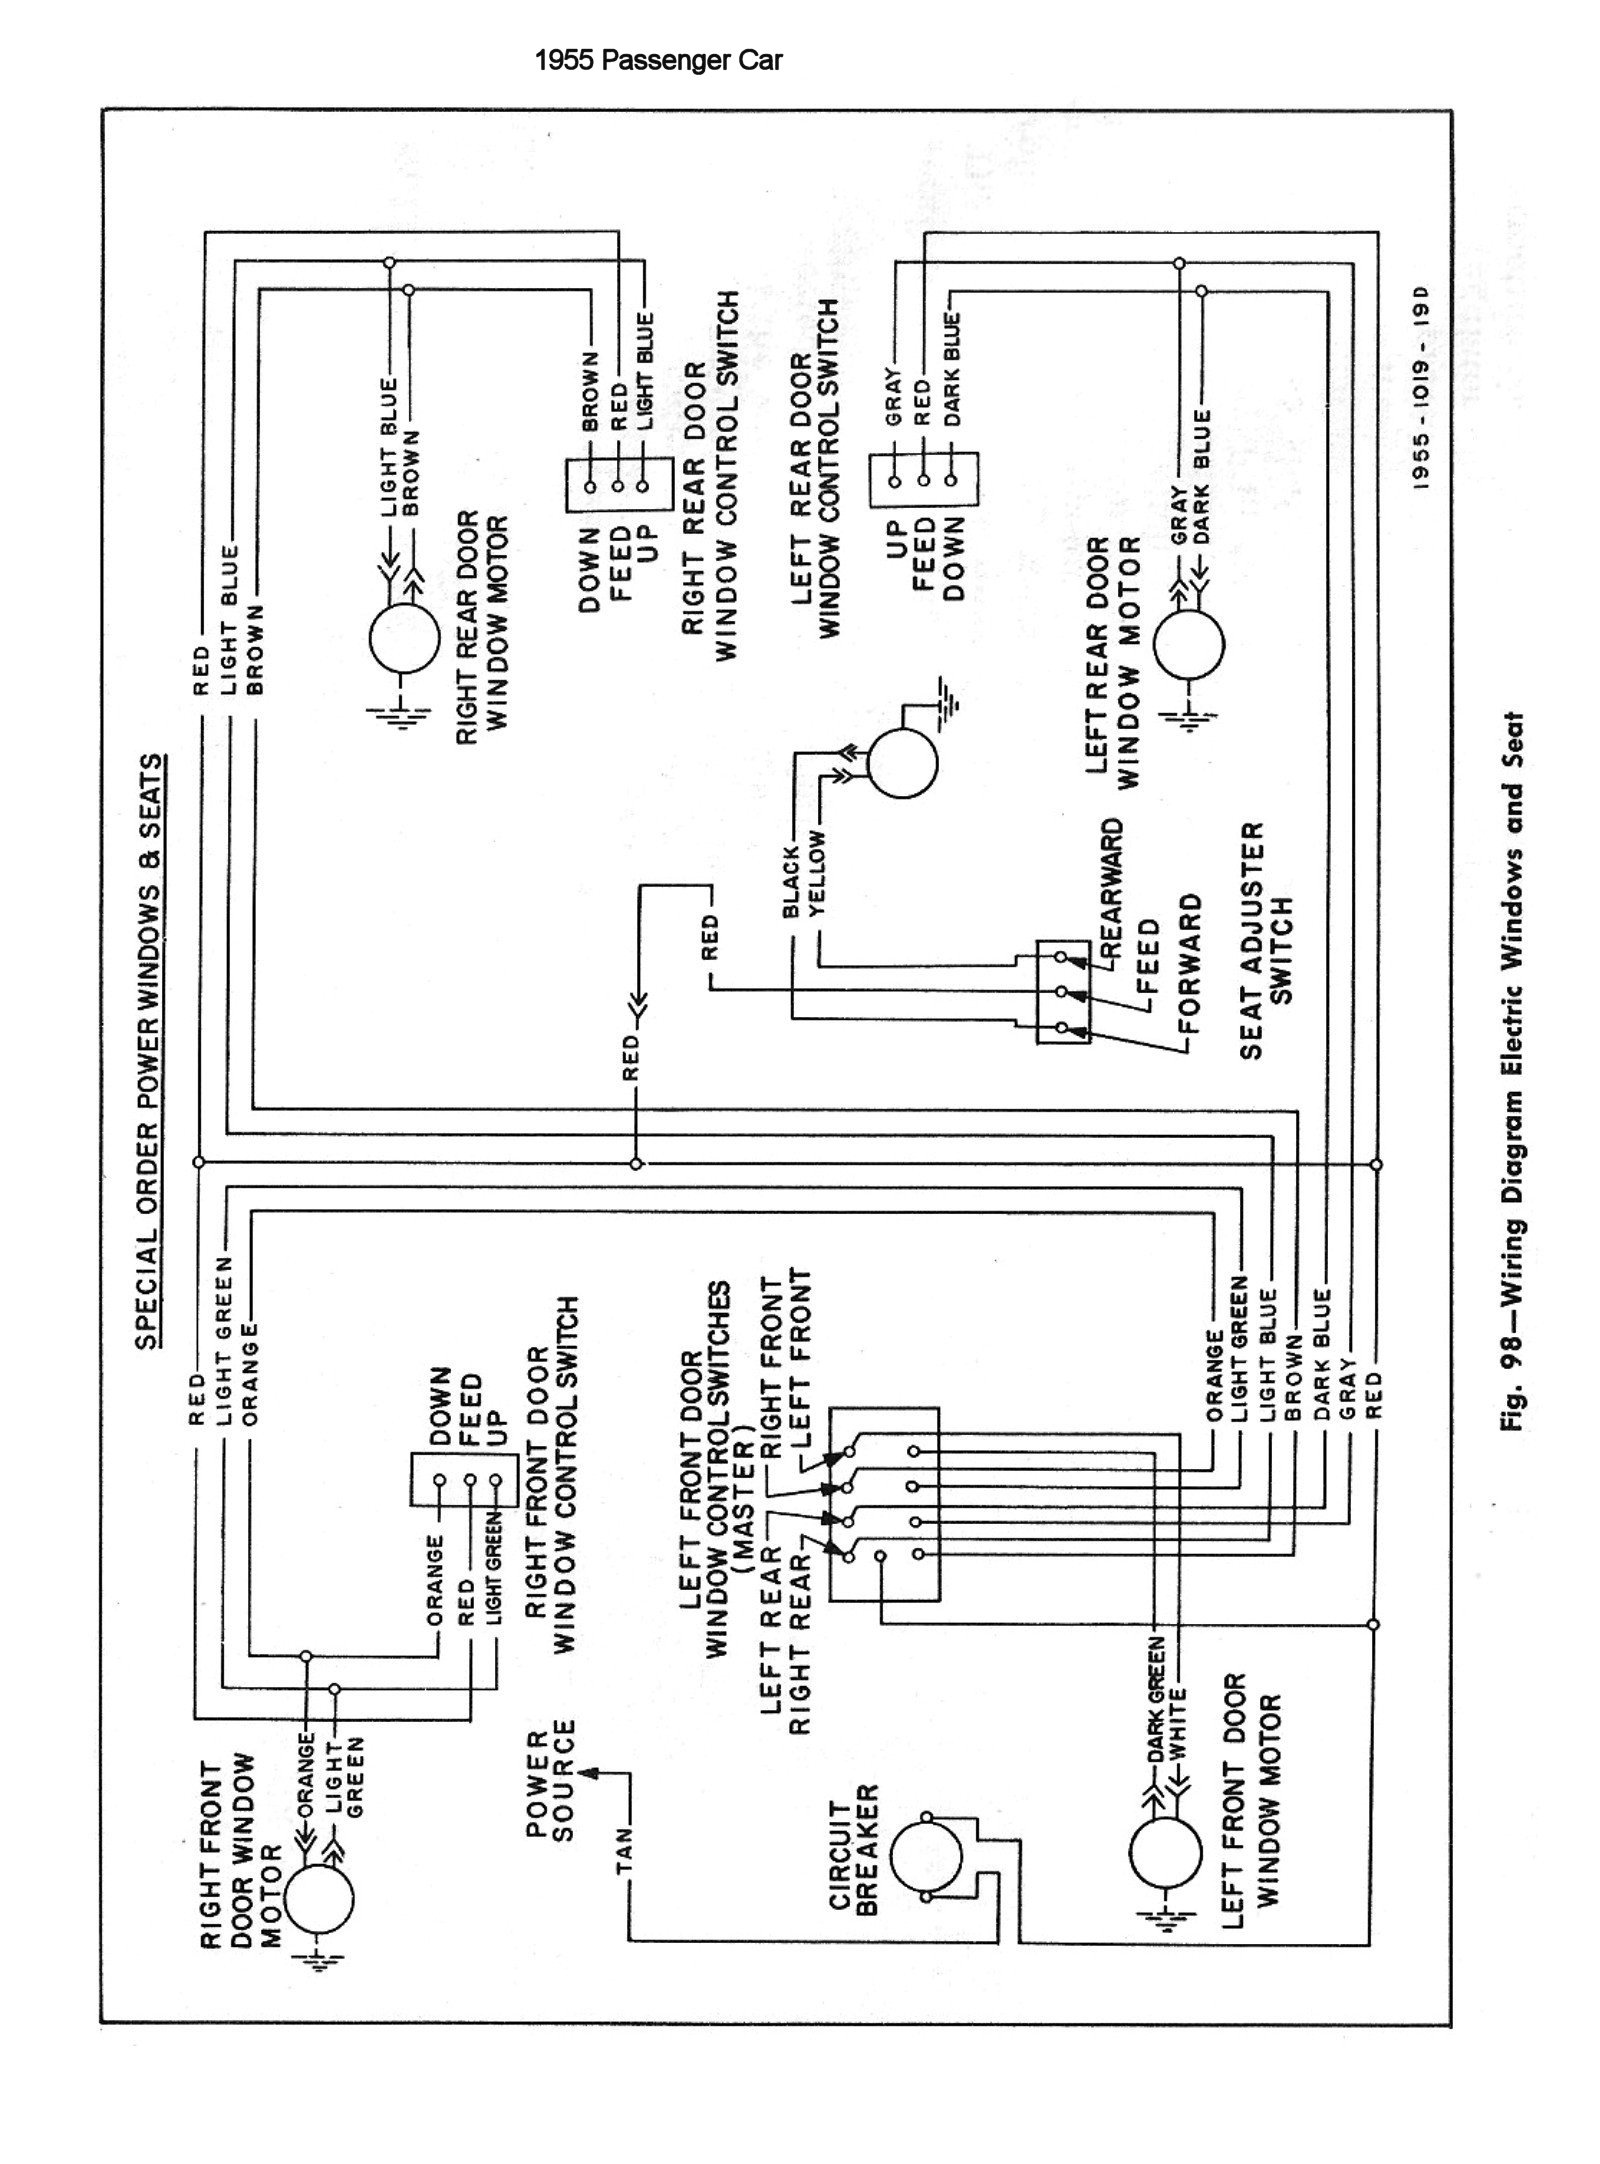 Wiring Schematics For Trucks - Wiring Diagram on